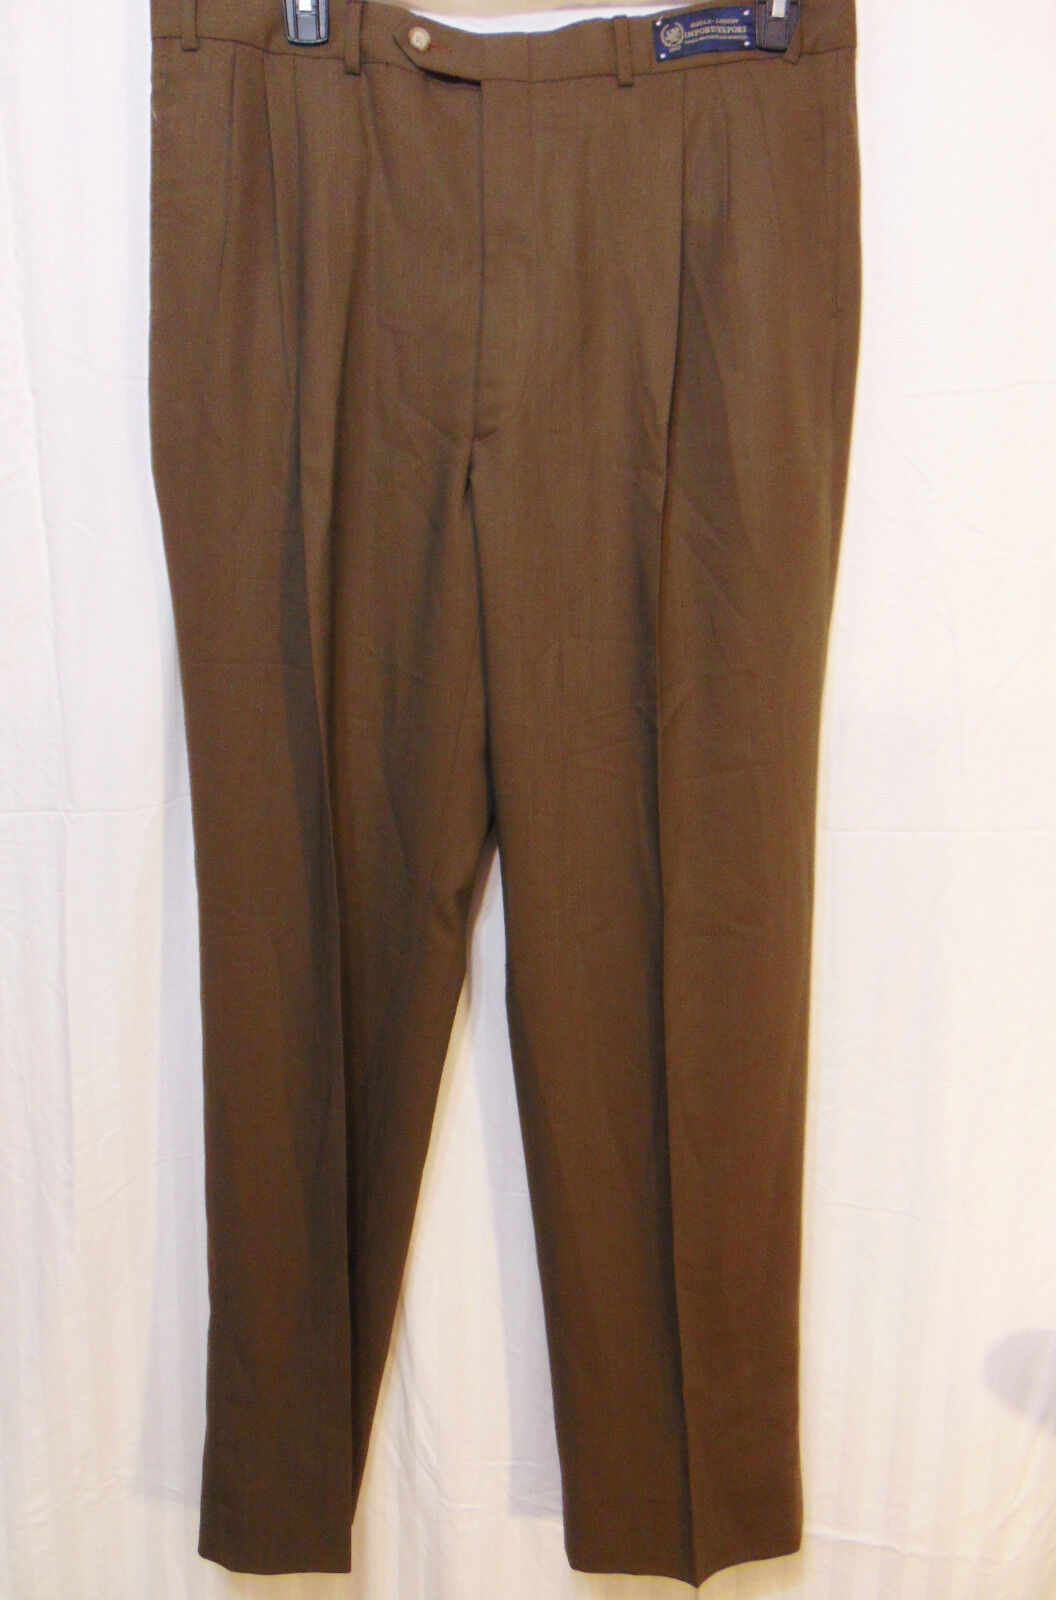 Robert Amerigo   Biella London Mens Pleated Dress Pants 38 x L 35 Brown Wool New